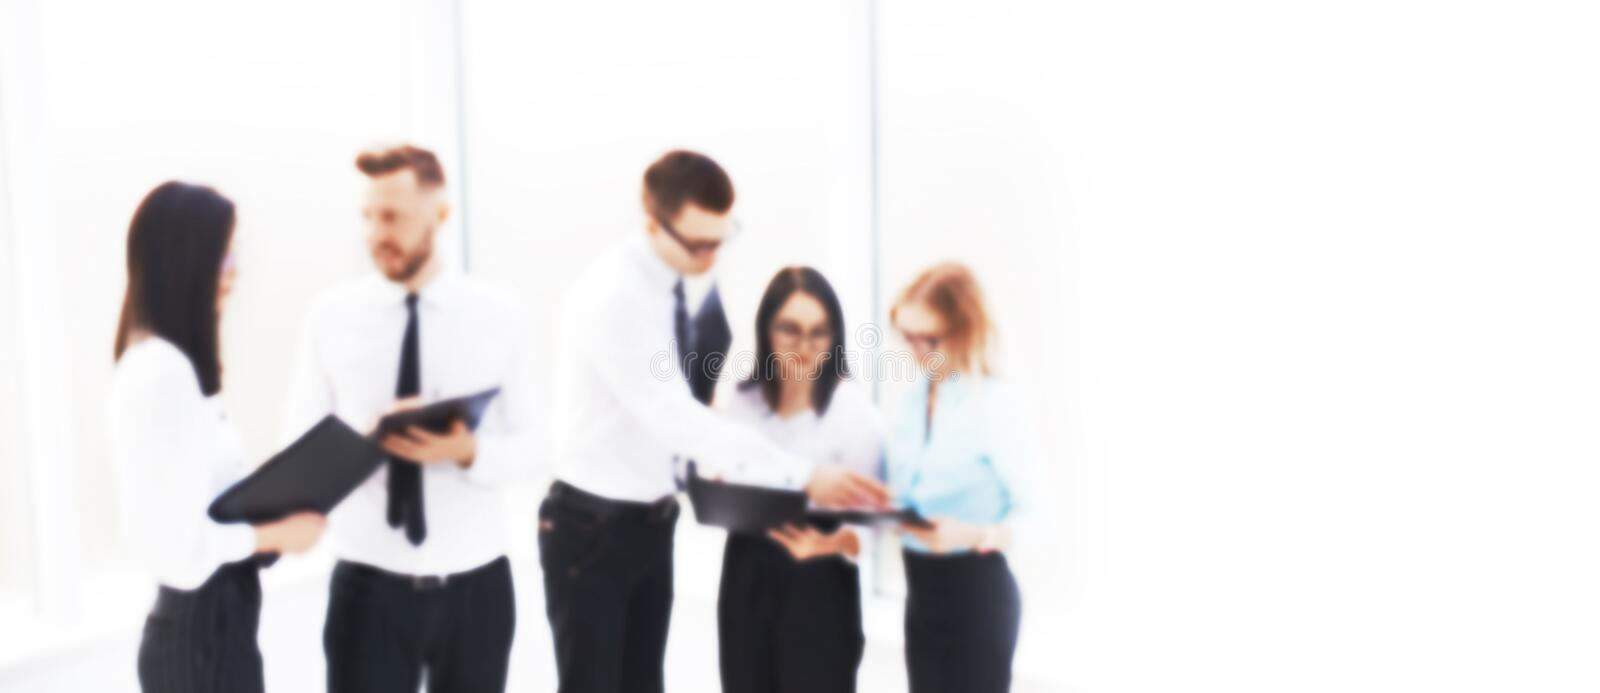 Business team discussing the work plan before the meeting. blurred image for the advertising text. photo with copy space royalty free stock photos